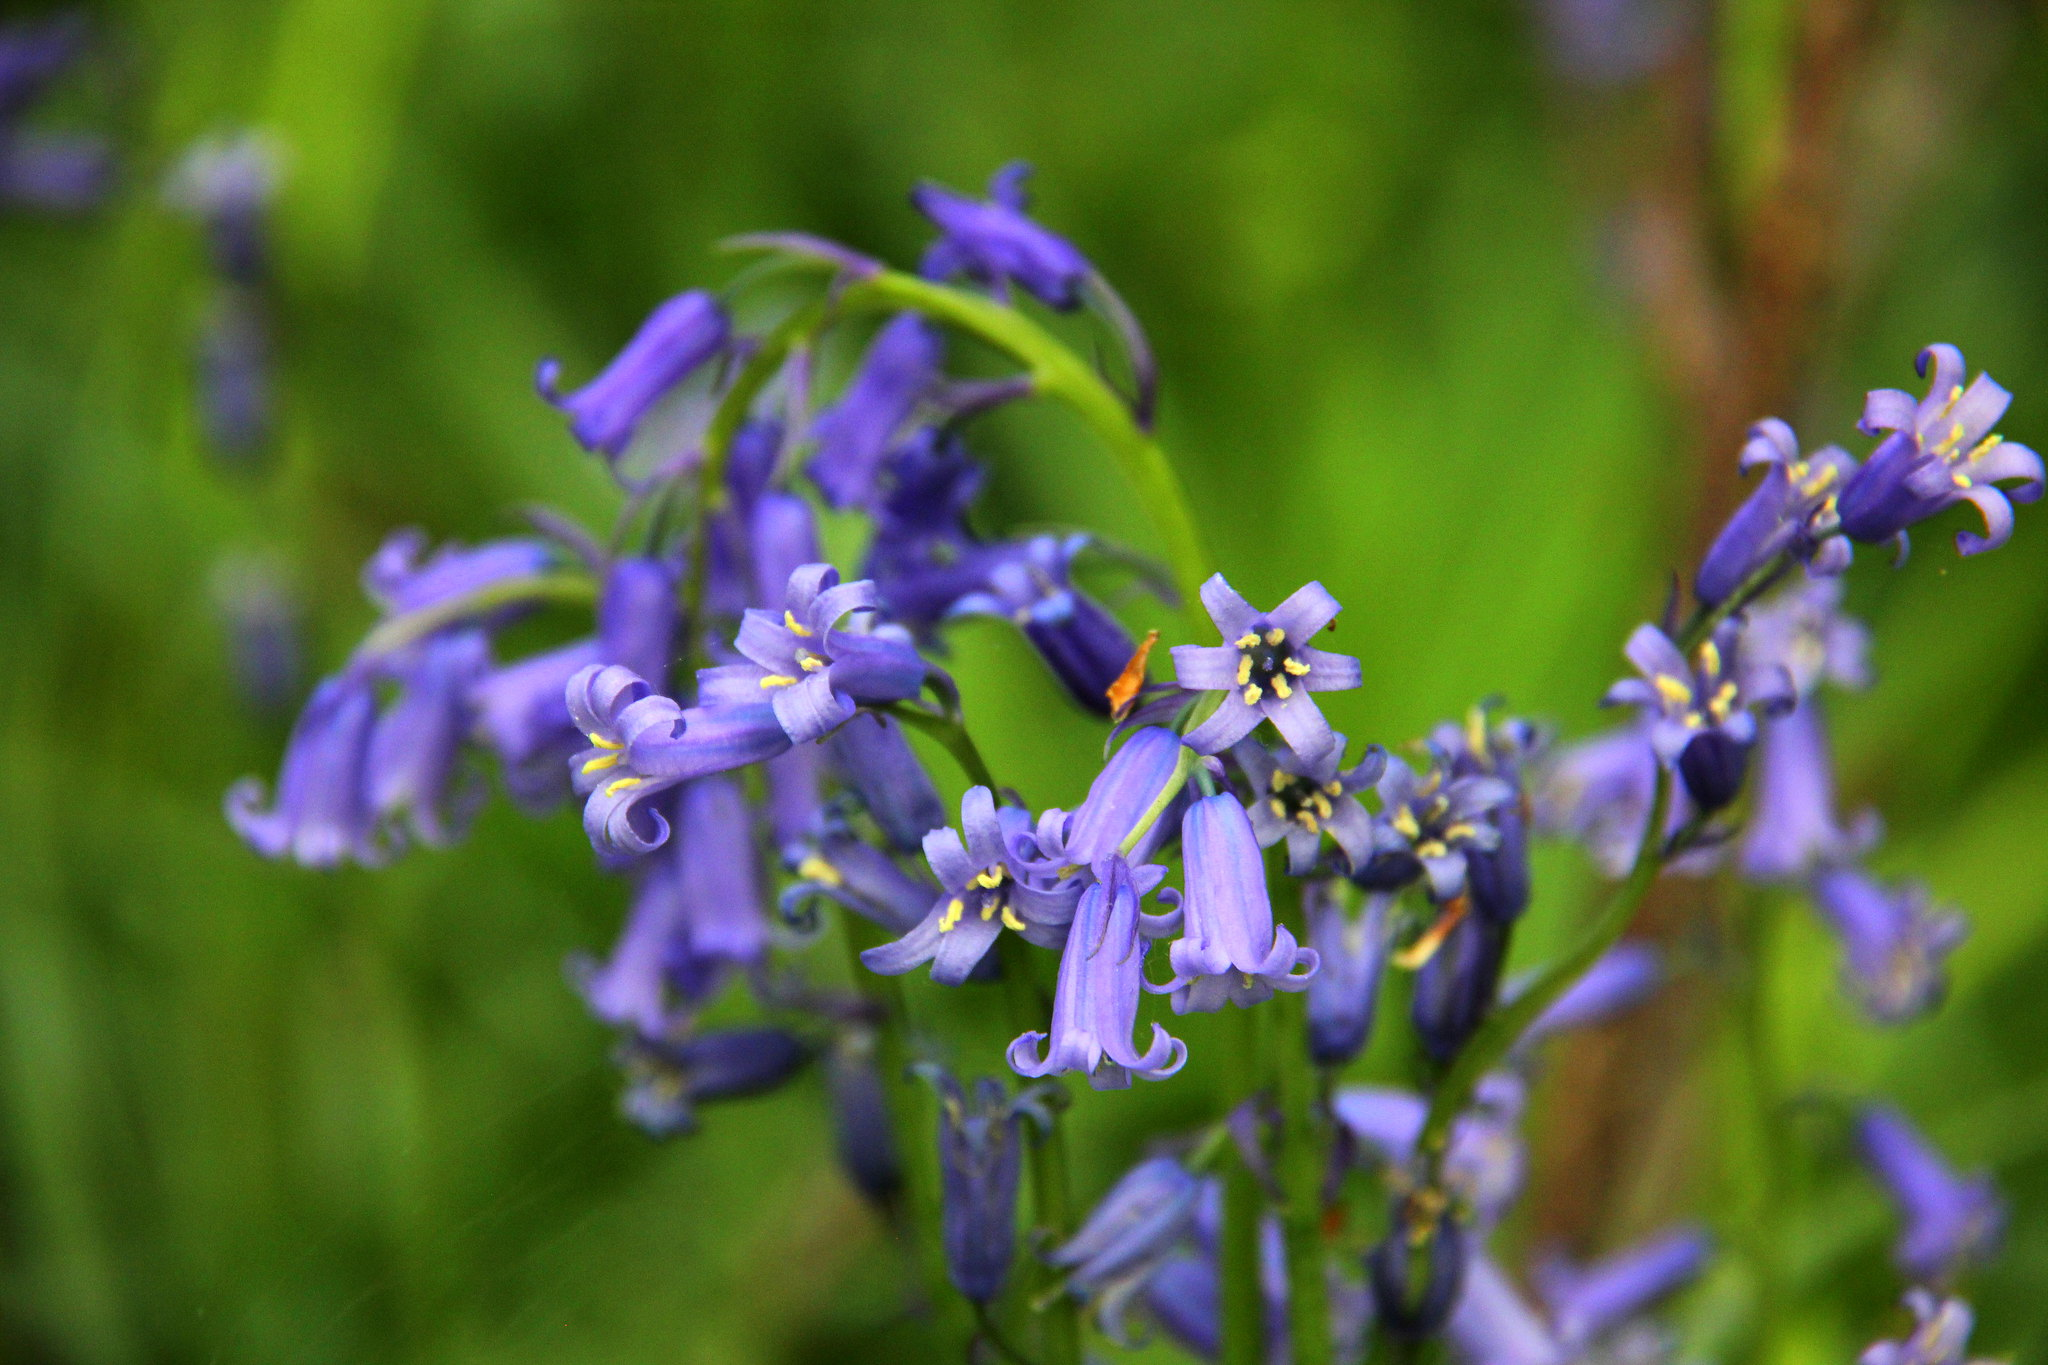 hallerbos blue forest gets its name from mass blooming of bluebells